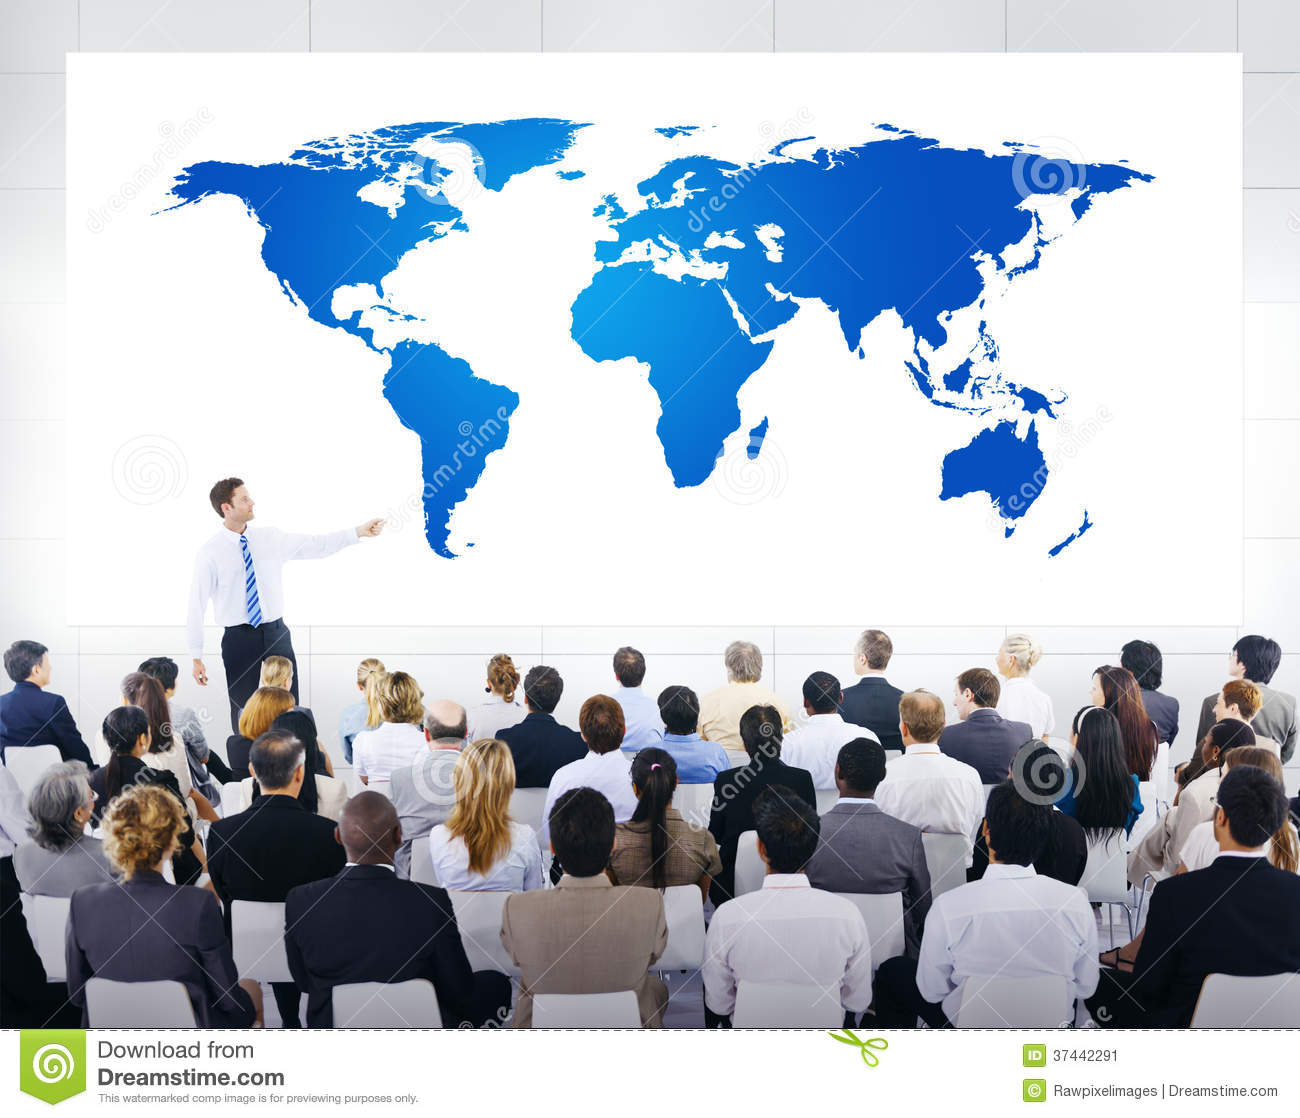 Global Business Presentation with World Map